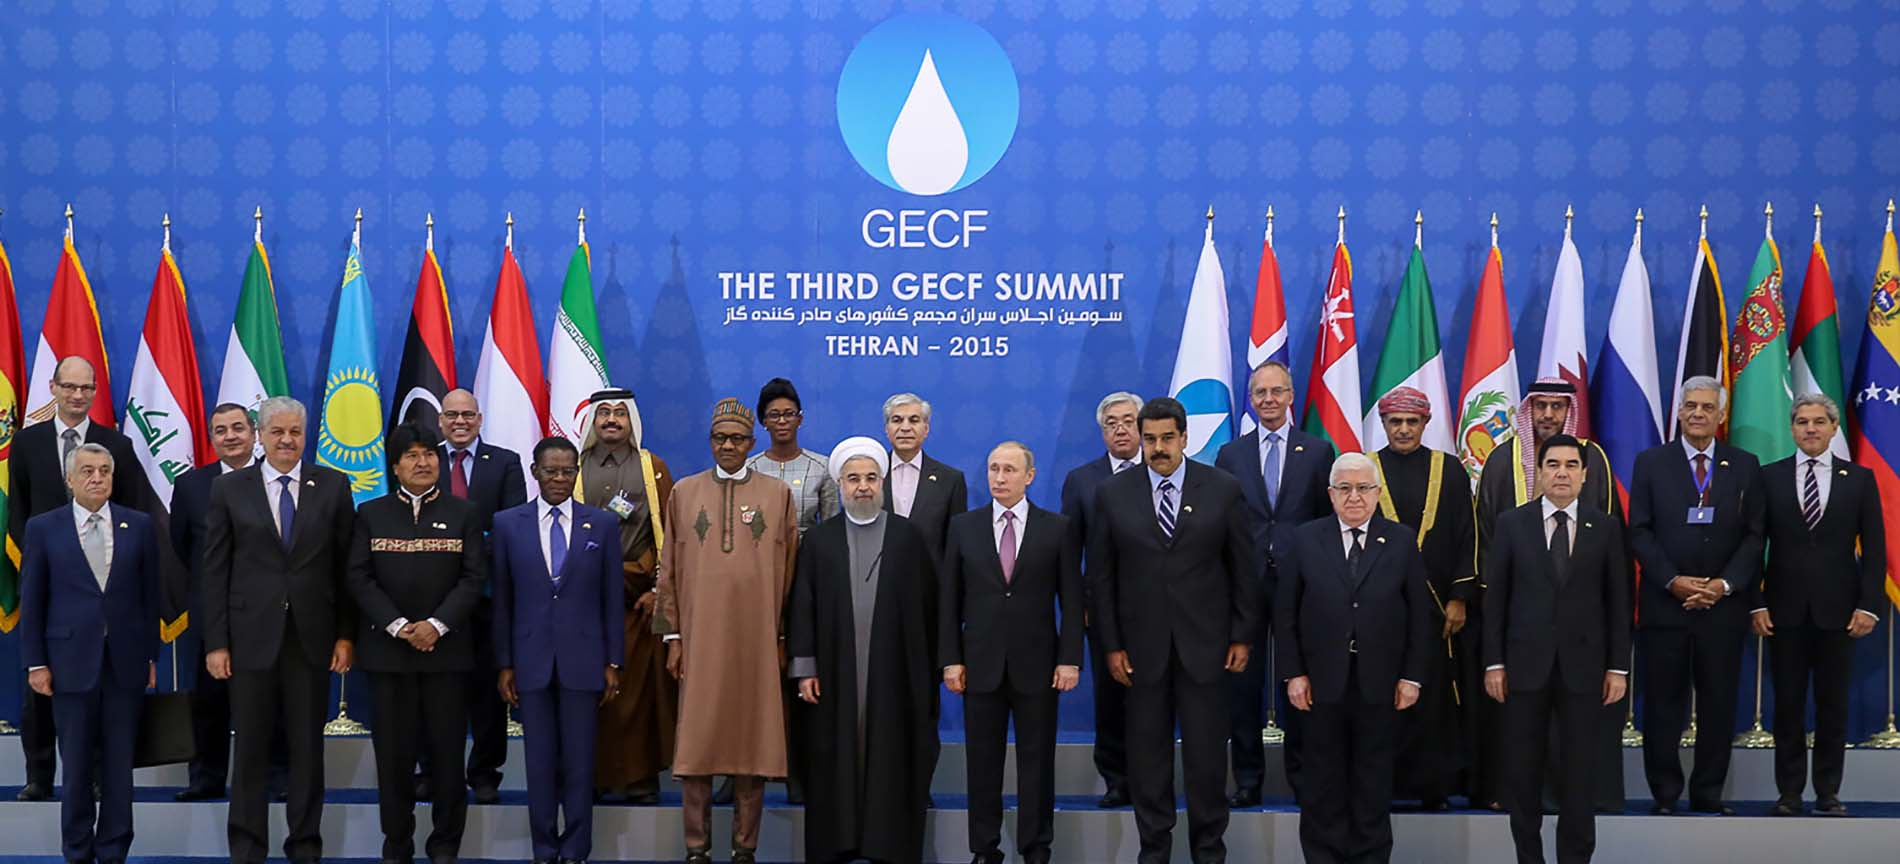 GECF Meeting in Iran